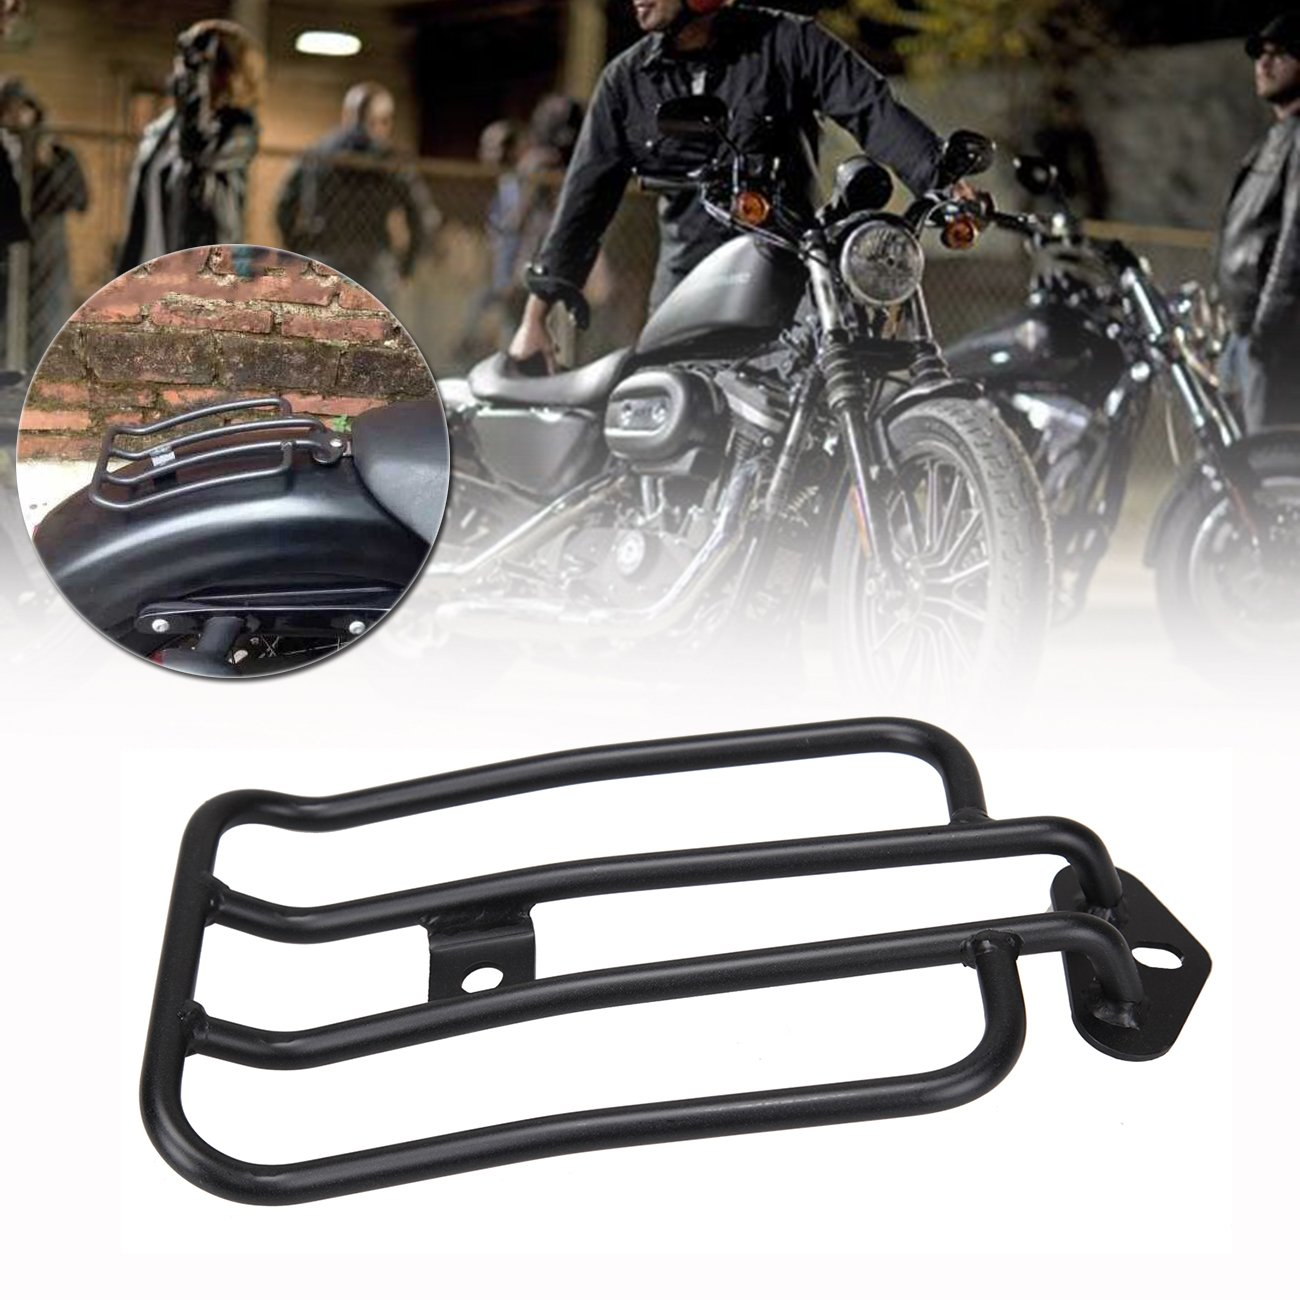 Samger Black Motorcycle Rear Rack Solo Seat Luggage Rack Plated Luggage Shelf for Harley Sportster XL 883 1200 77-0073 77-0073-B